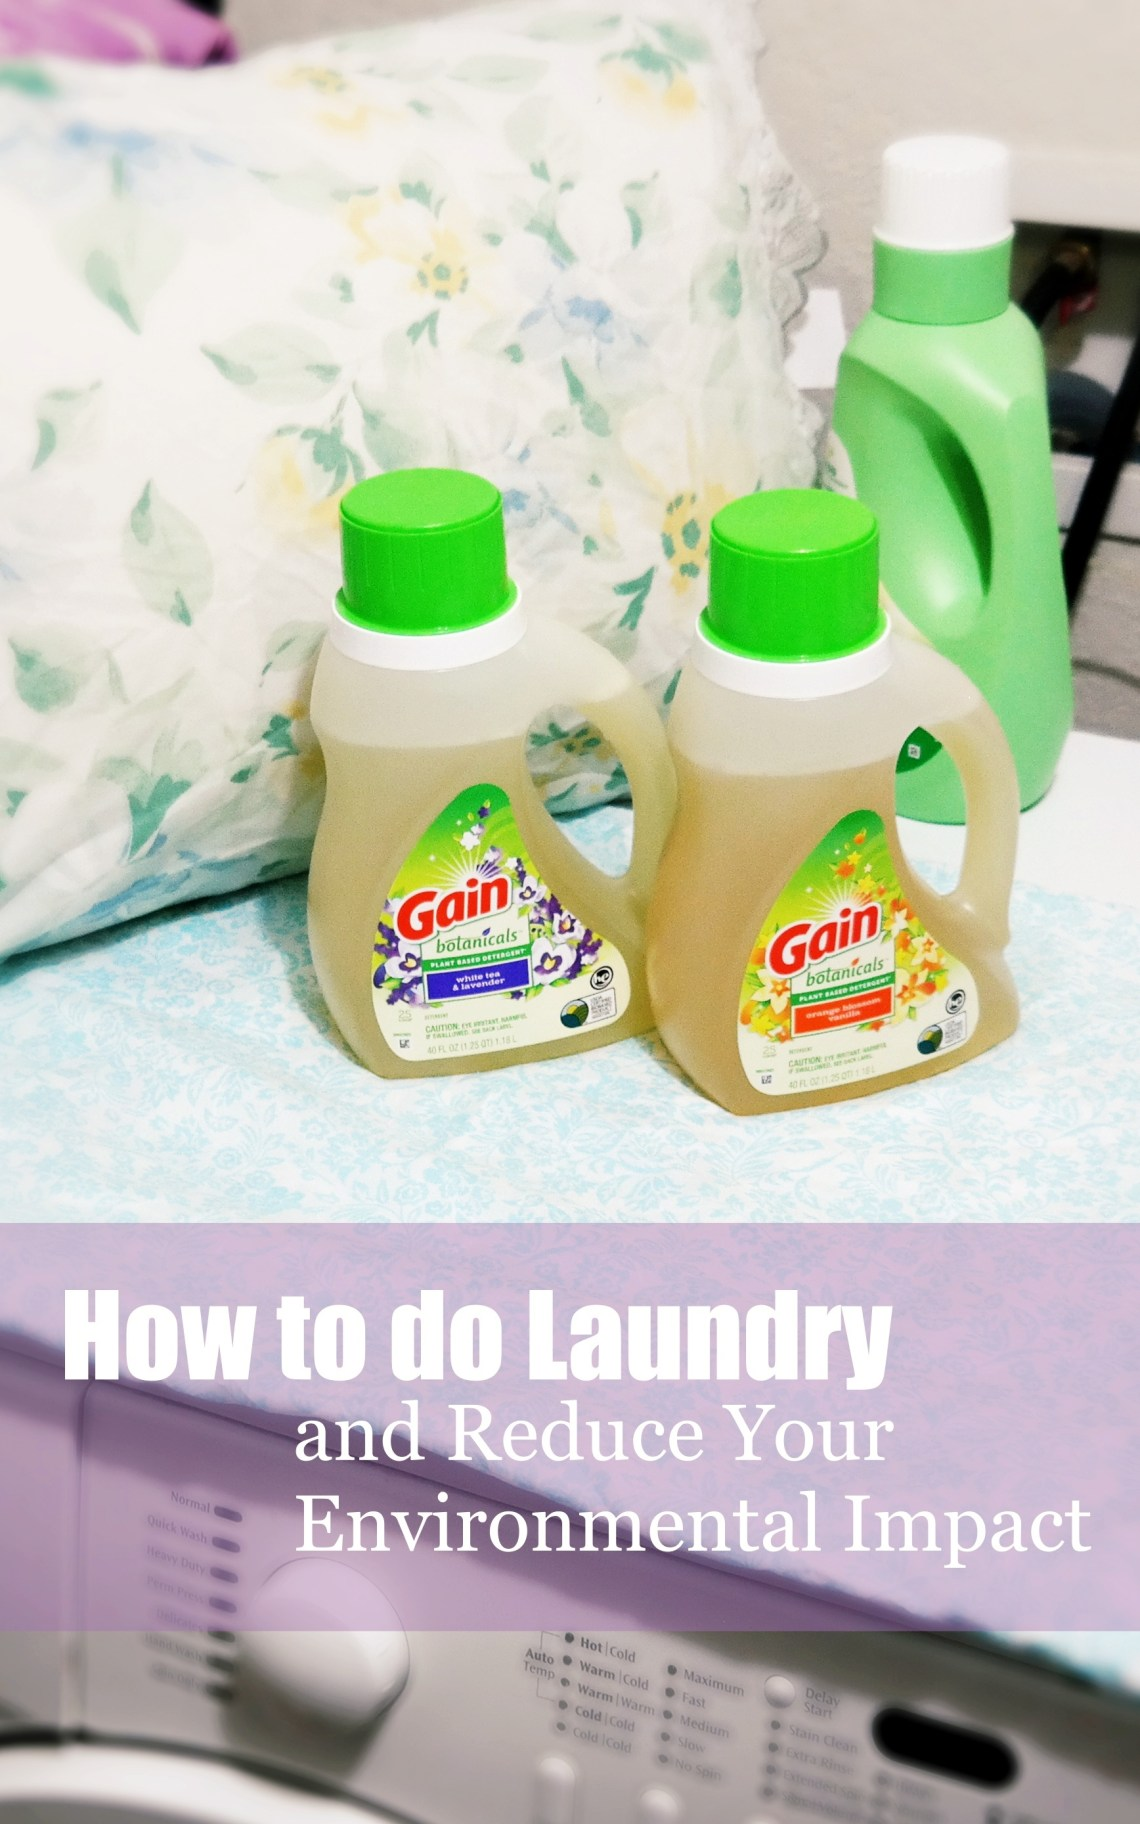 Making Laundry More Eco-Friendly with Gain Botanicals